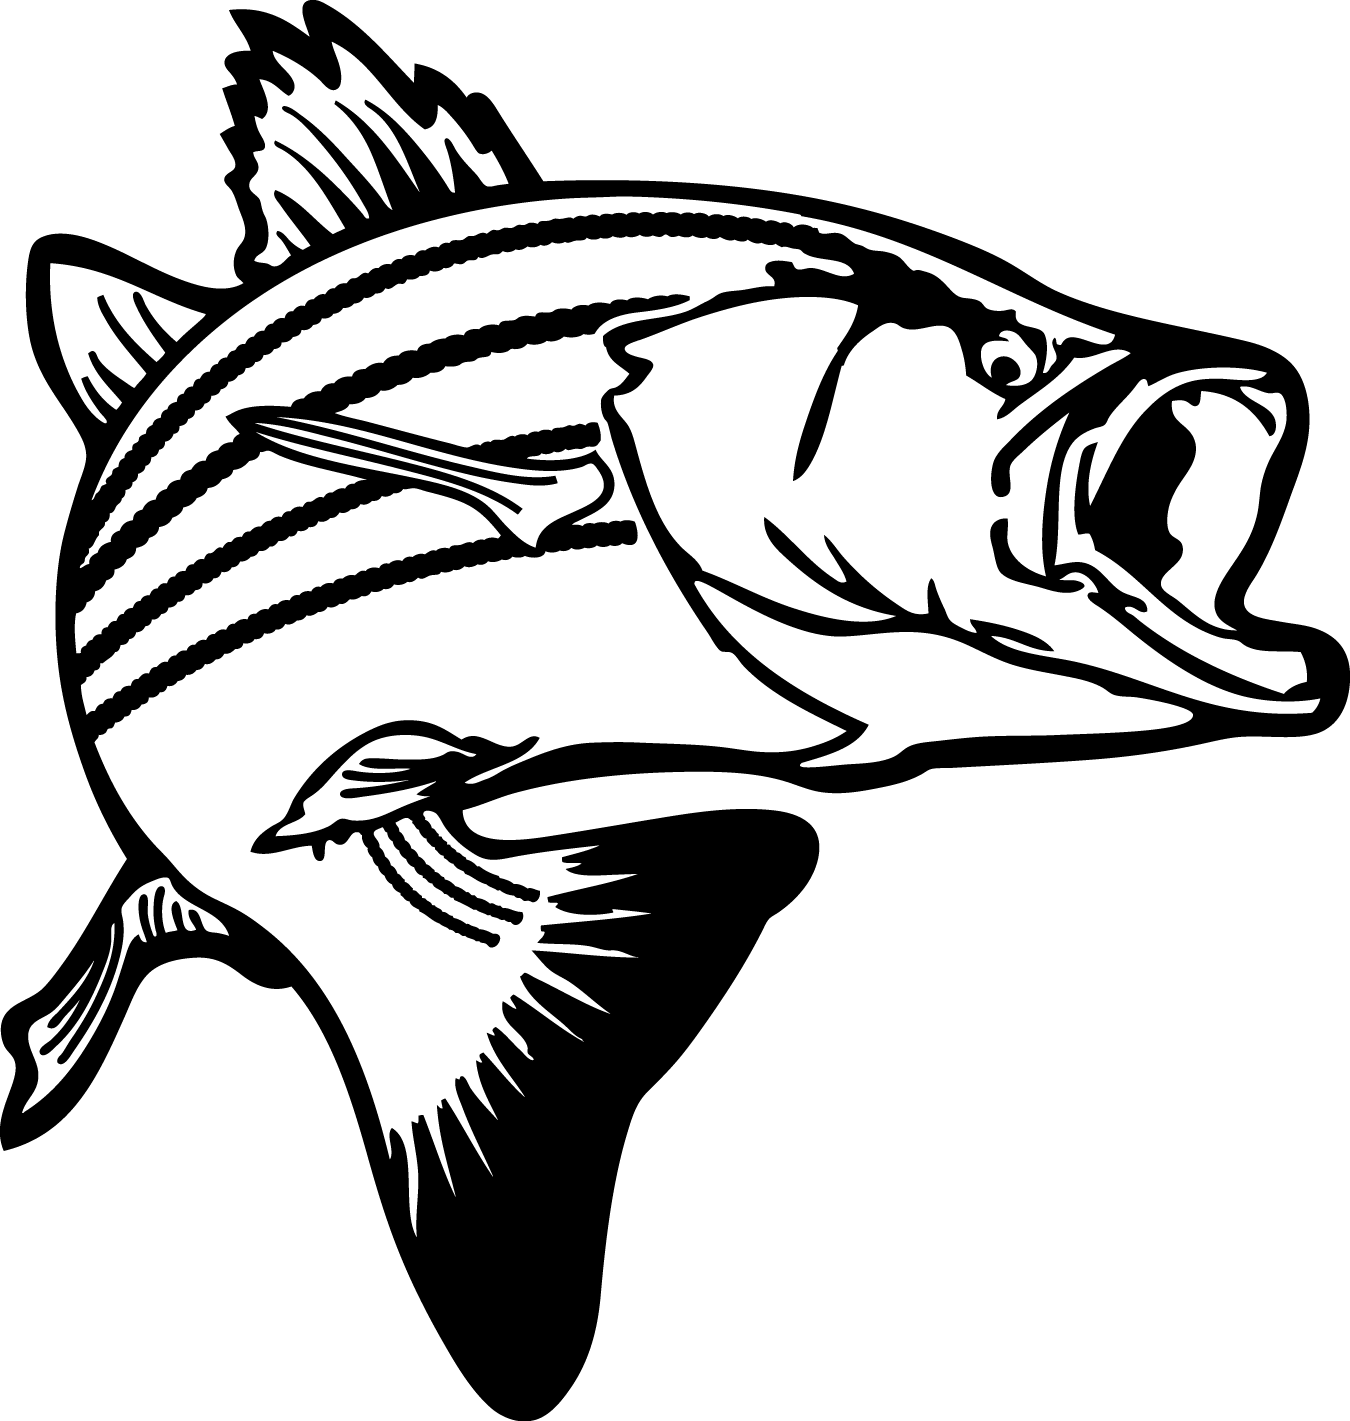 Bass fish coloring pages. Fishing clipart dog